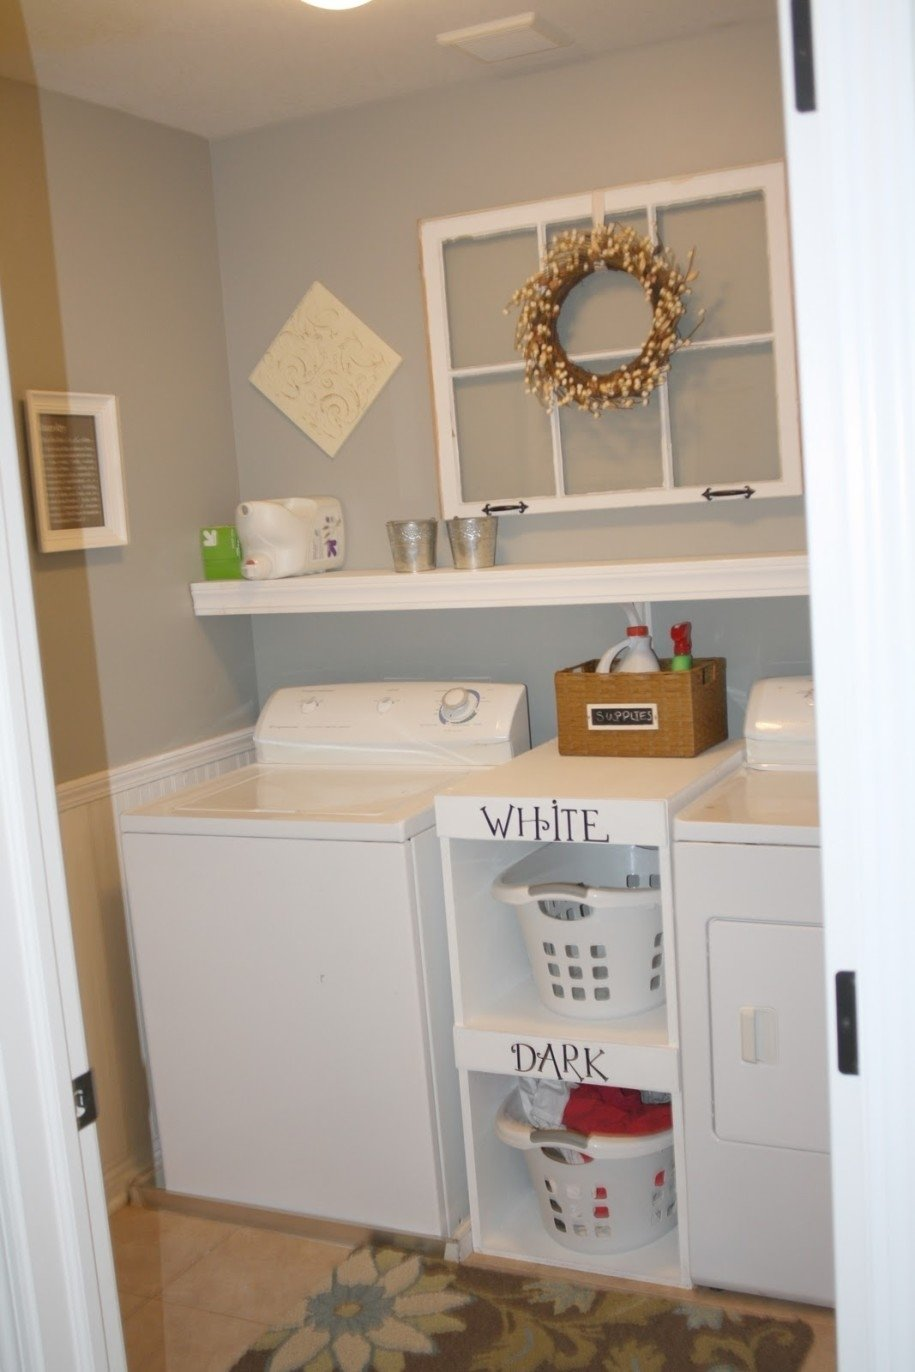 10 Best Laundry Room Ideas For Small Spaces small room design laundry room ideas for small spaces design a 2021